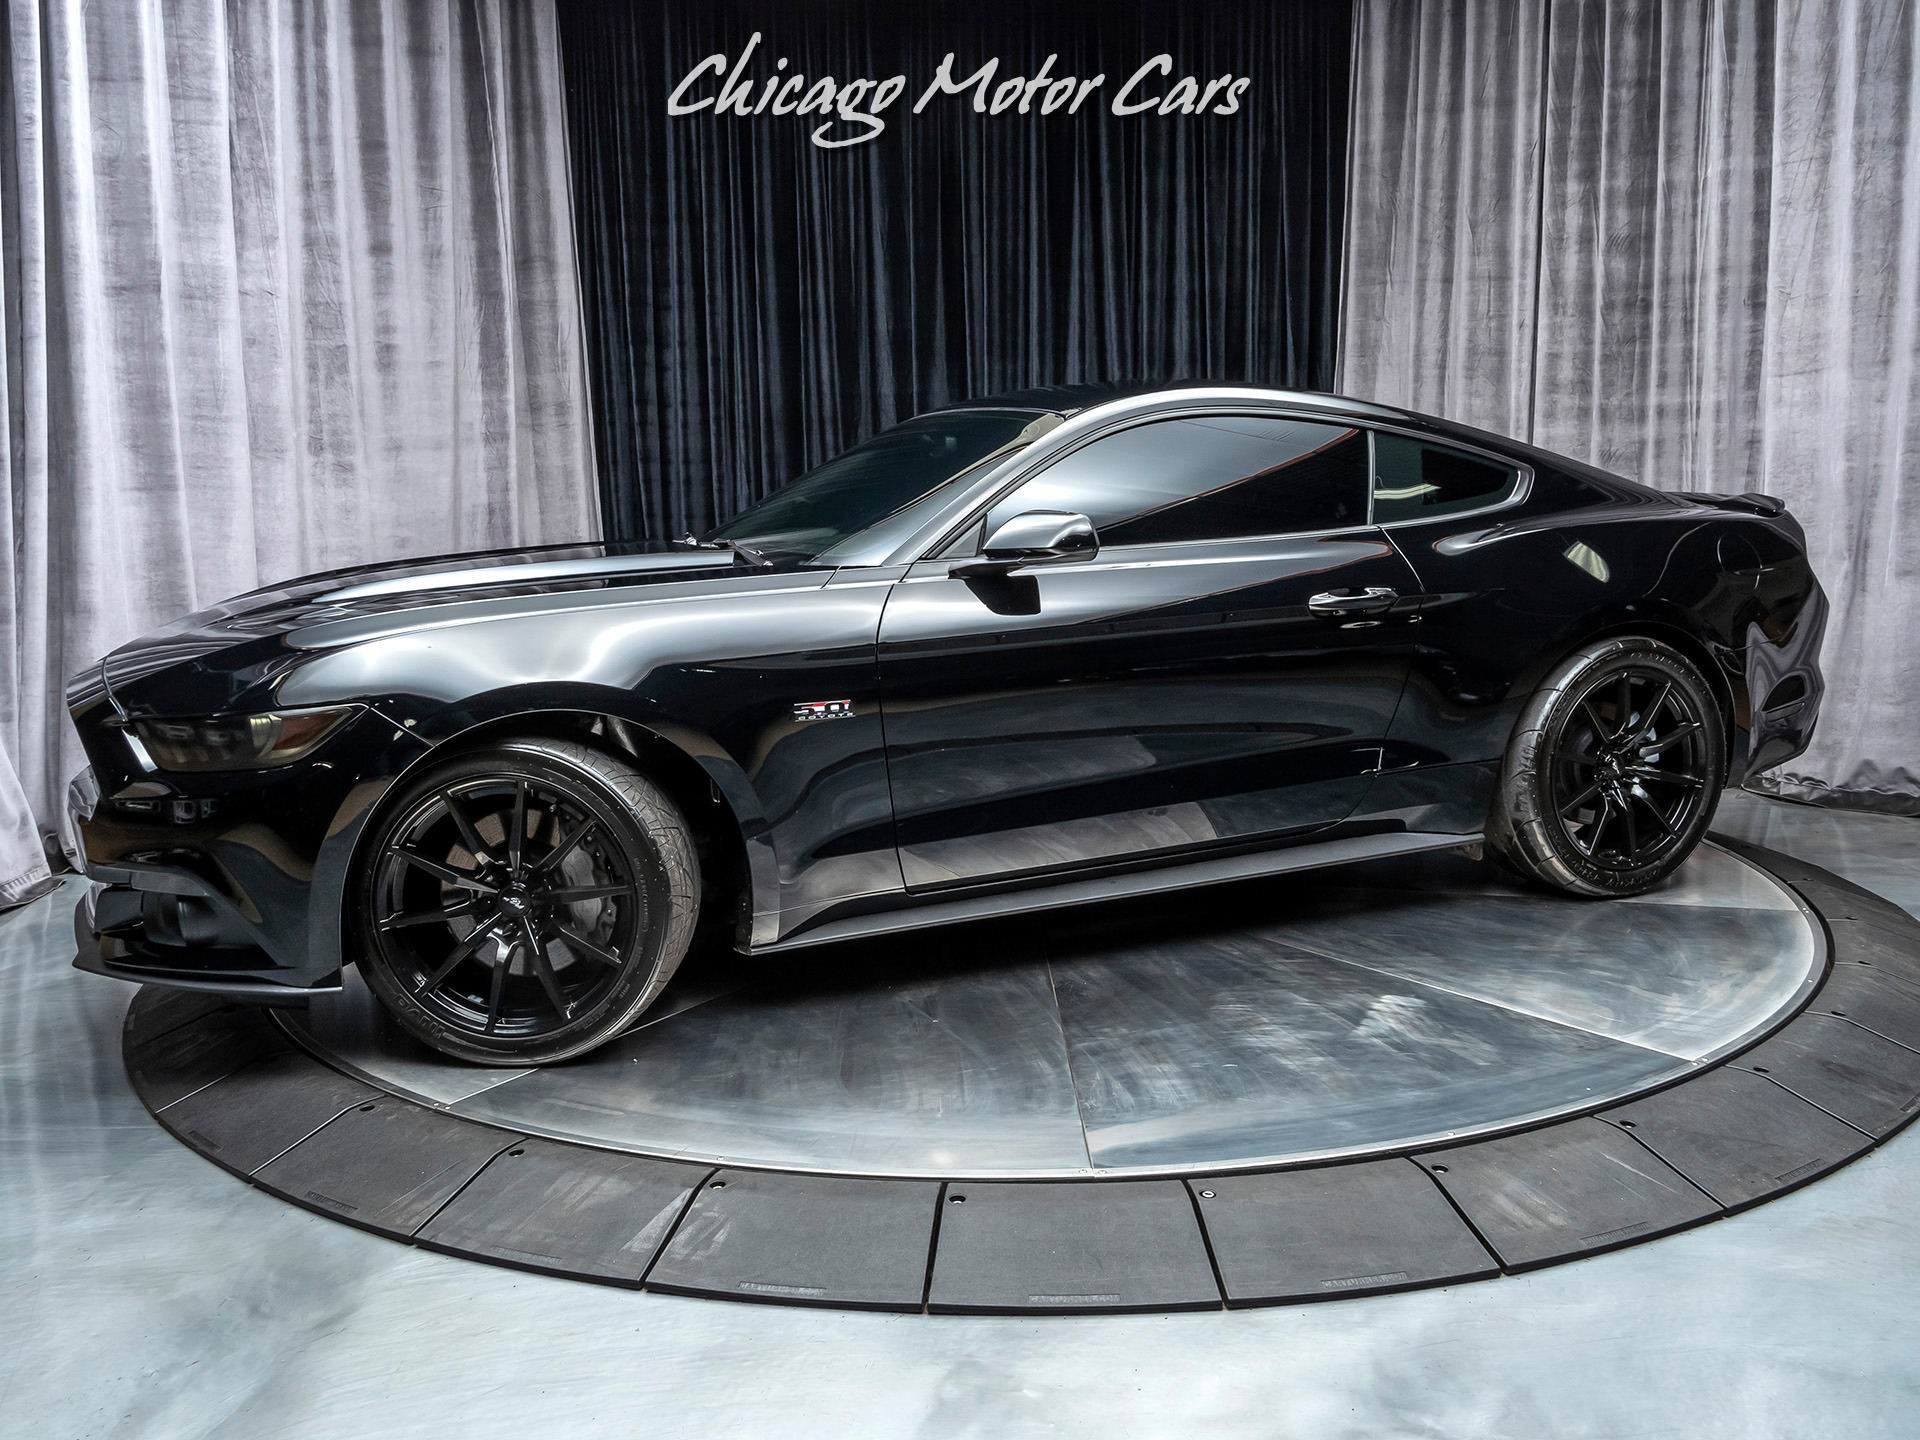 2017 Mustang Gt For Sale >> Used 2017 Ford Mustang Gt 6 Speed Manual For Sale 30 800